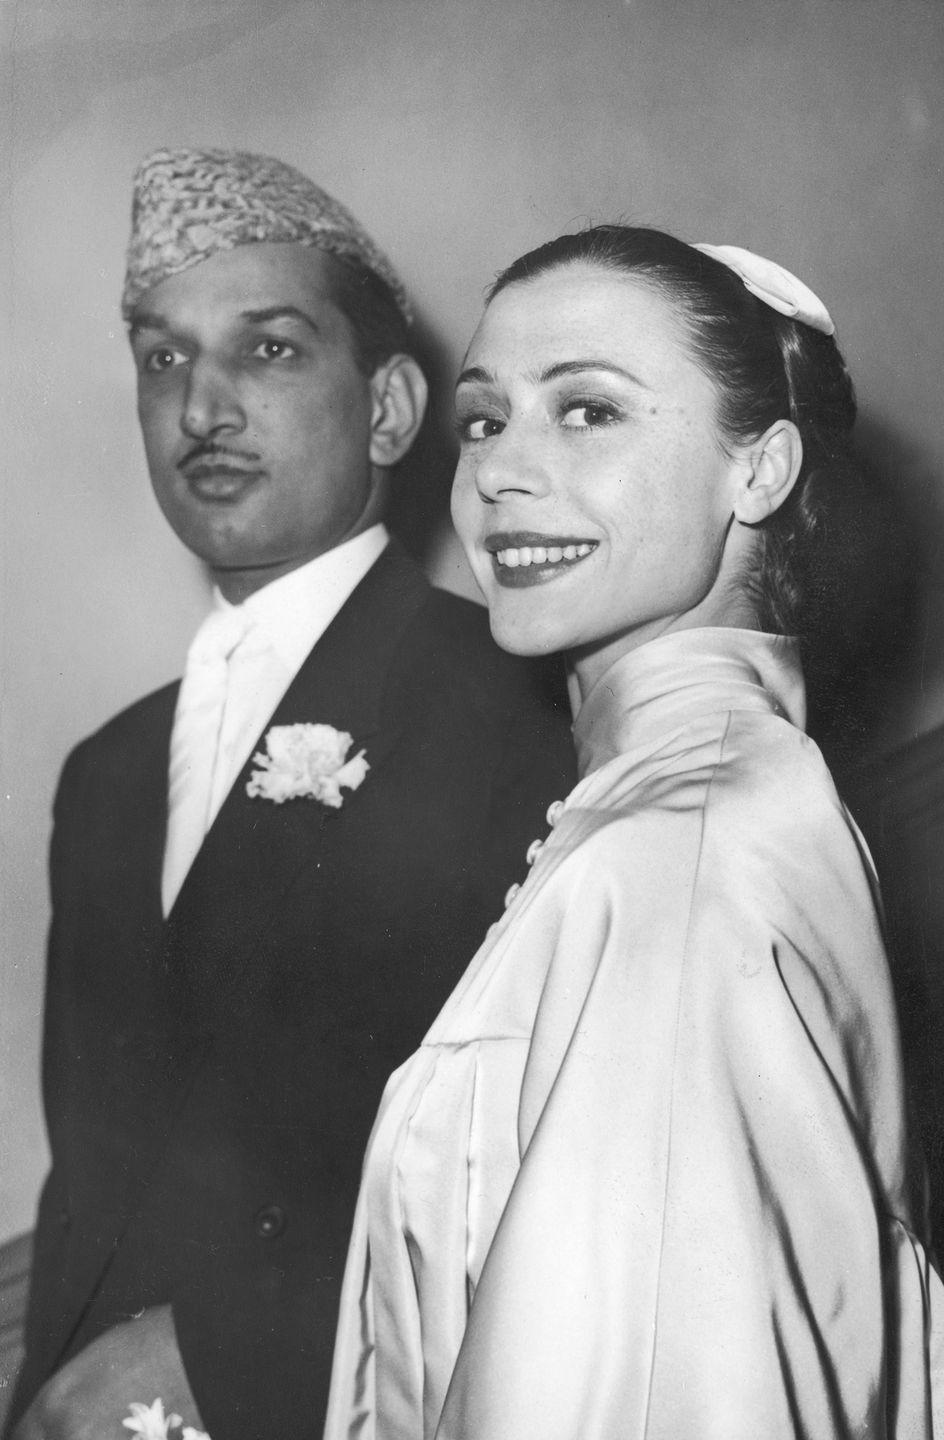 <p>British ballerina Svetlana Beriosvoa and Mohammed Masud Raza Khan accidentally alerted the press to their impending nuptials when they applied for their marriage license. The couple married at the registry office in London in 1959. </p>